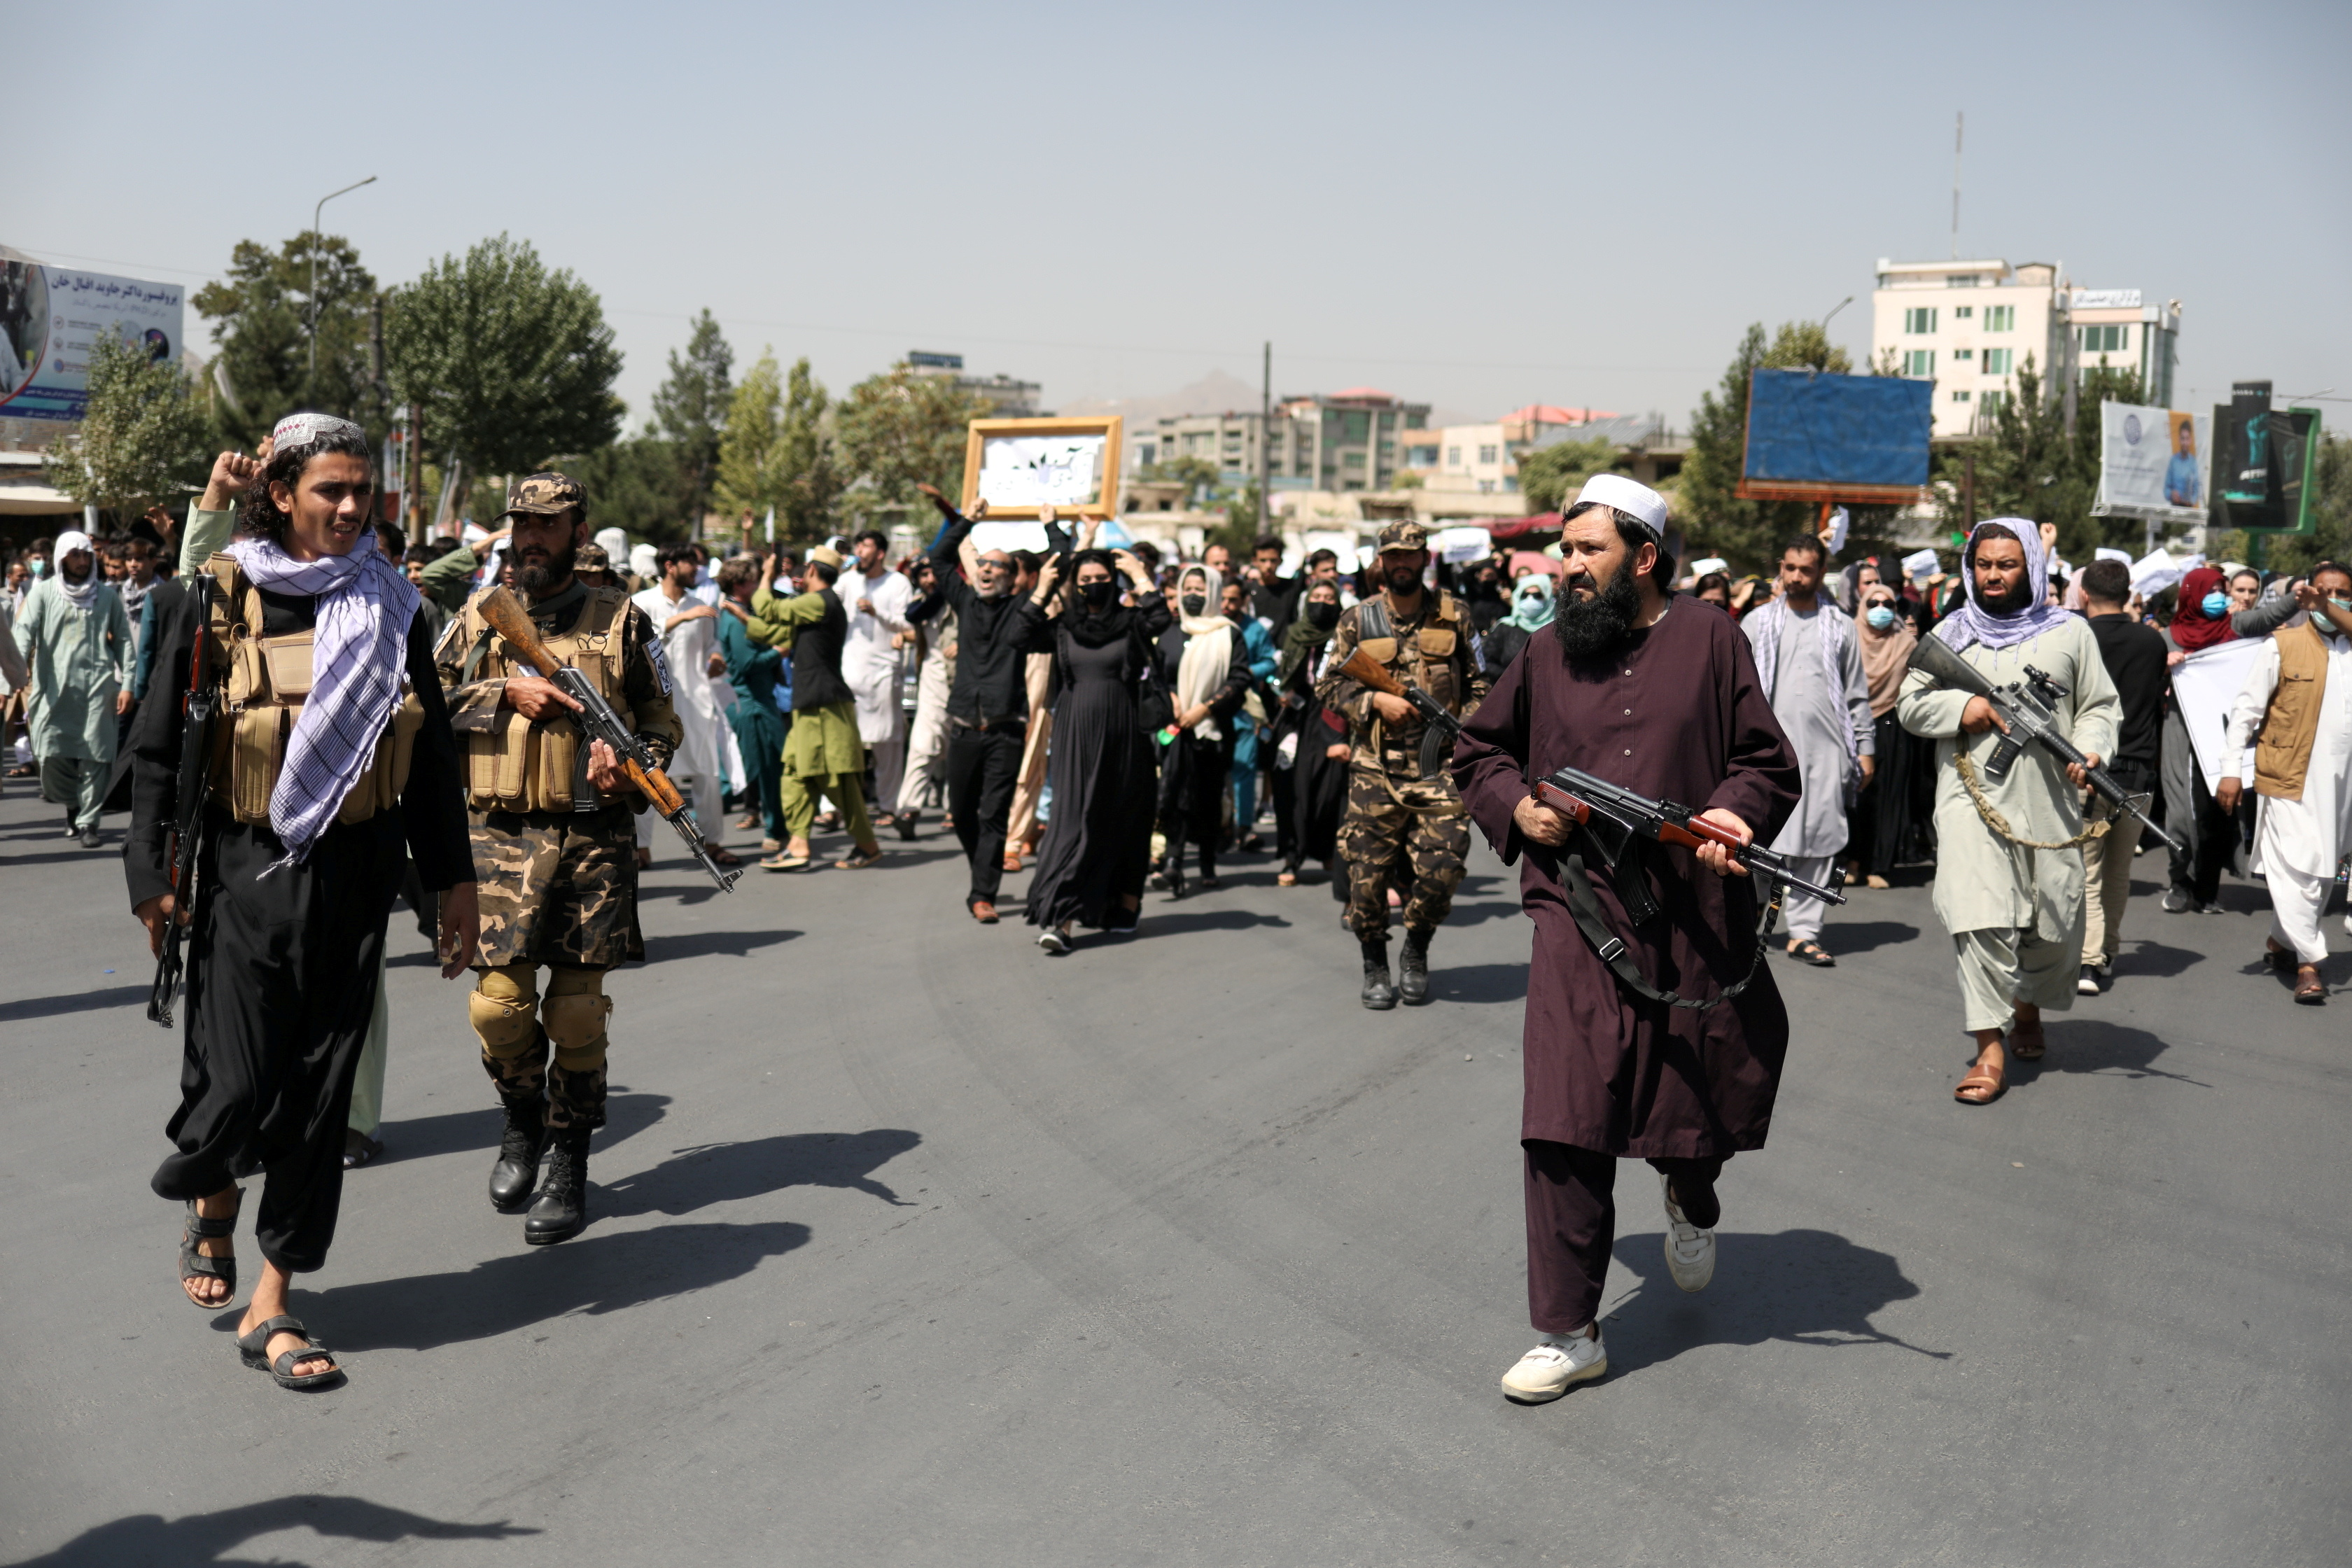 Taliban soldiers stand in front of protesters during the anti-Pakistan protest in Kabul, Afghanistan, September 7, 2021. WANA (West Asia News Agency) via REUTERS